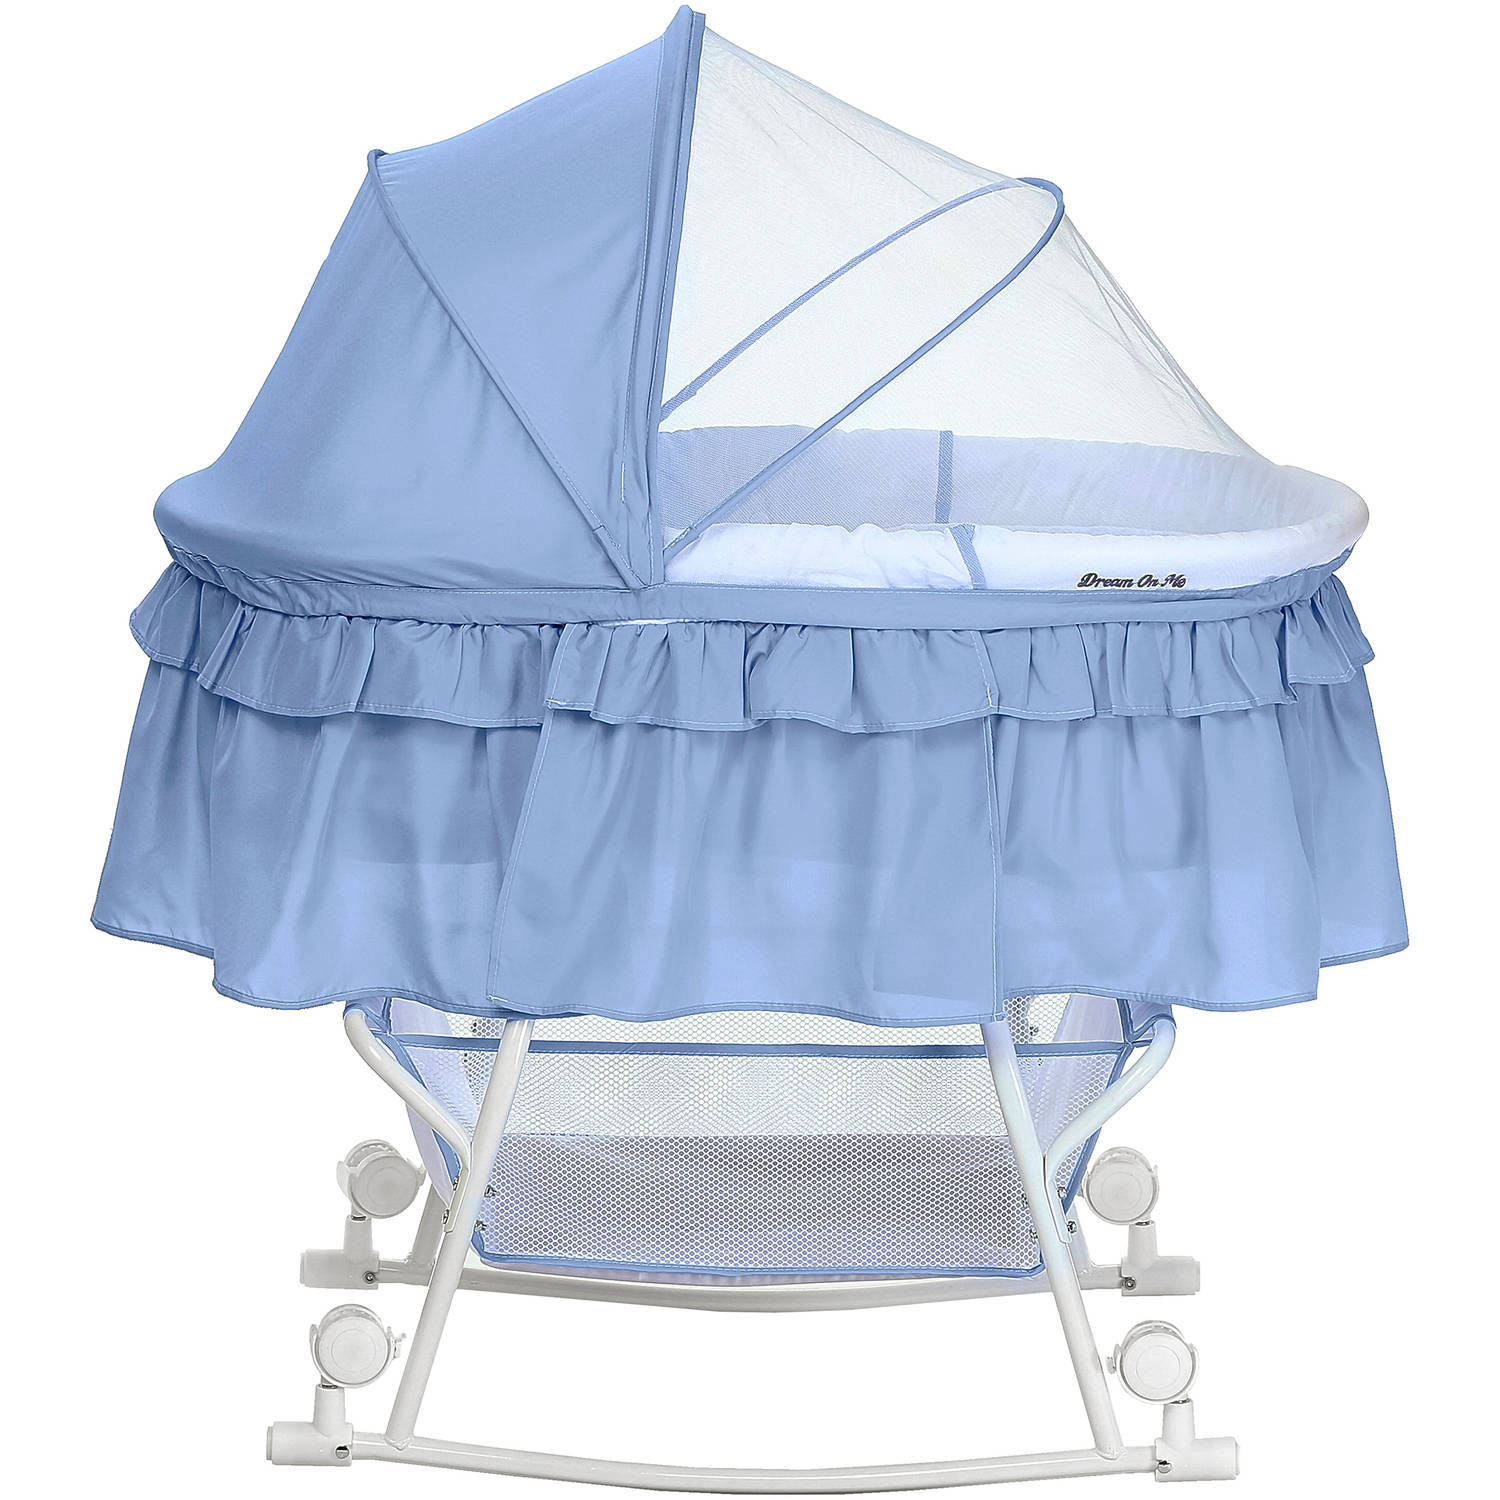 Dream On Me Lacy Portable 2 In 1 Bassinet And Cradle, Blue/White    Walmart.com